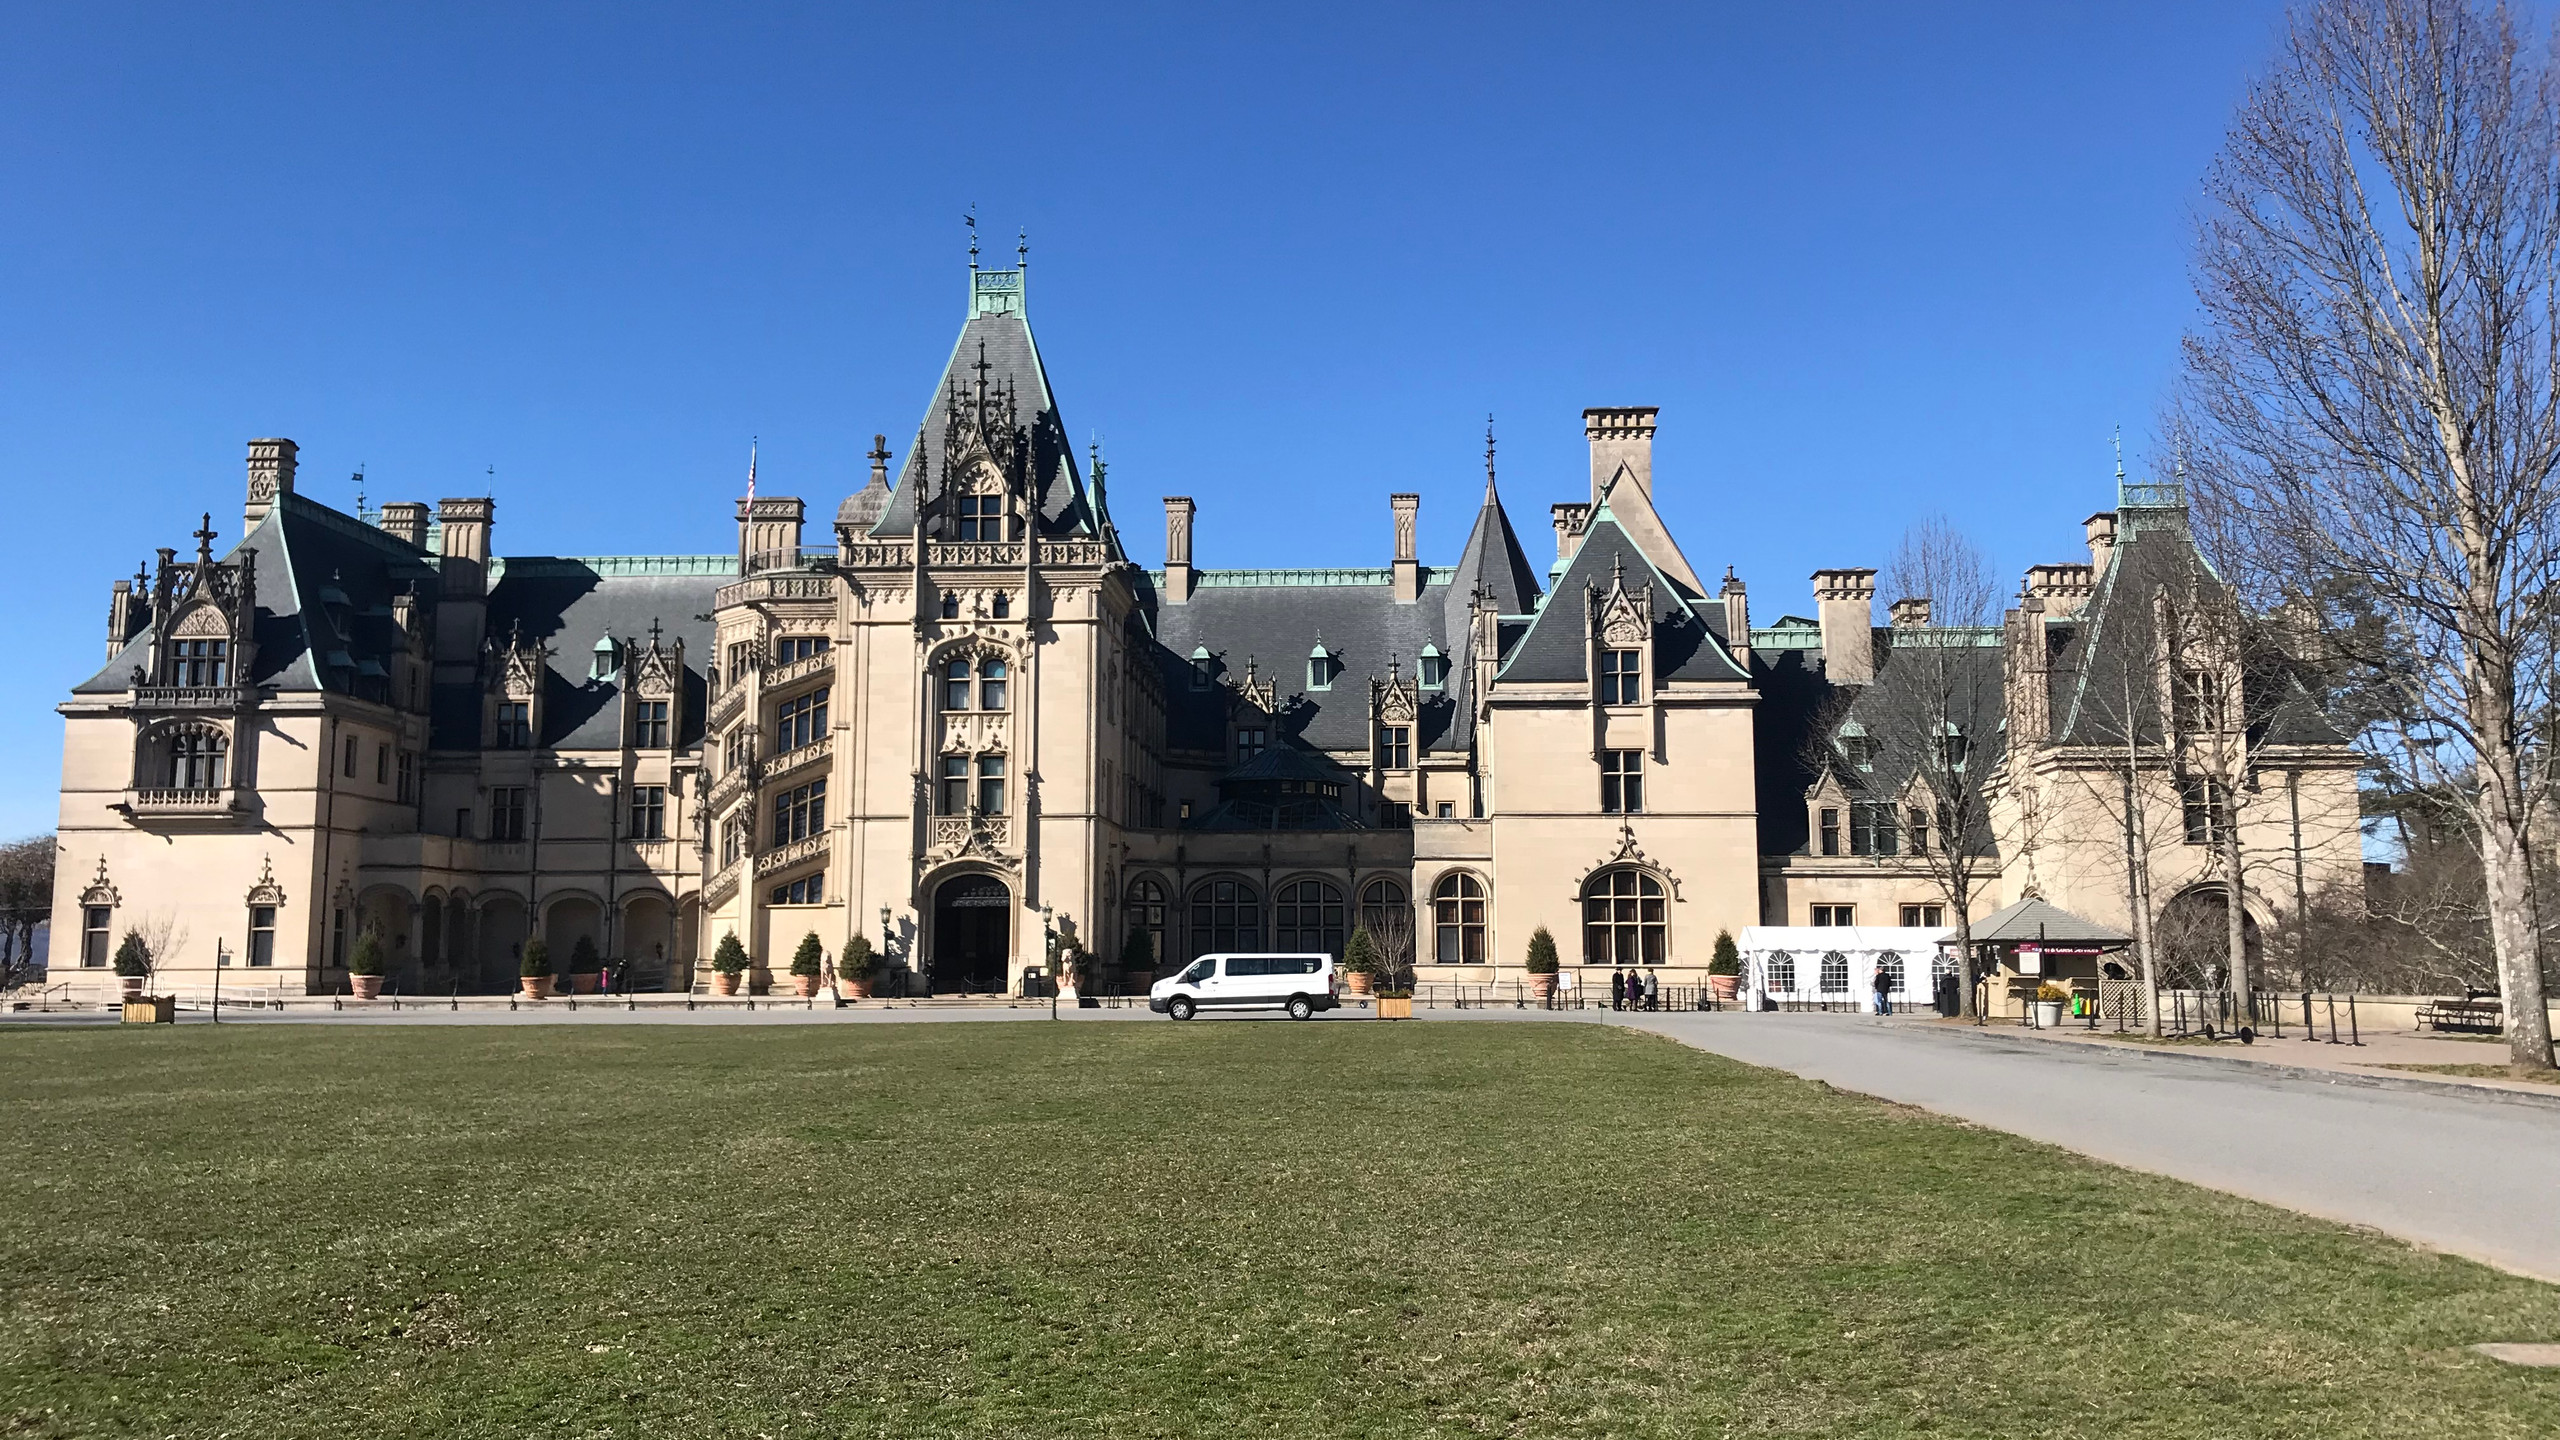 Another View of the Biltmore